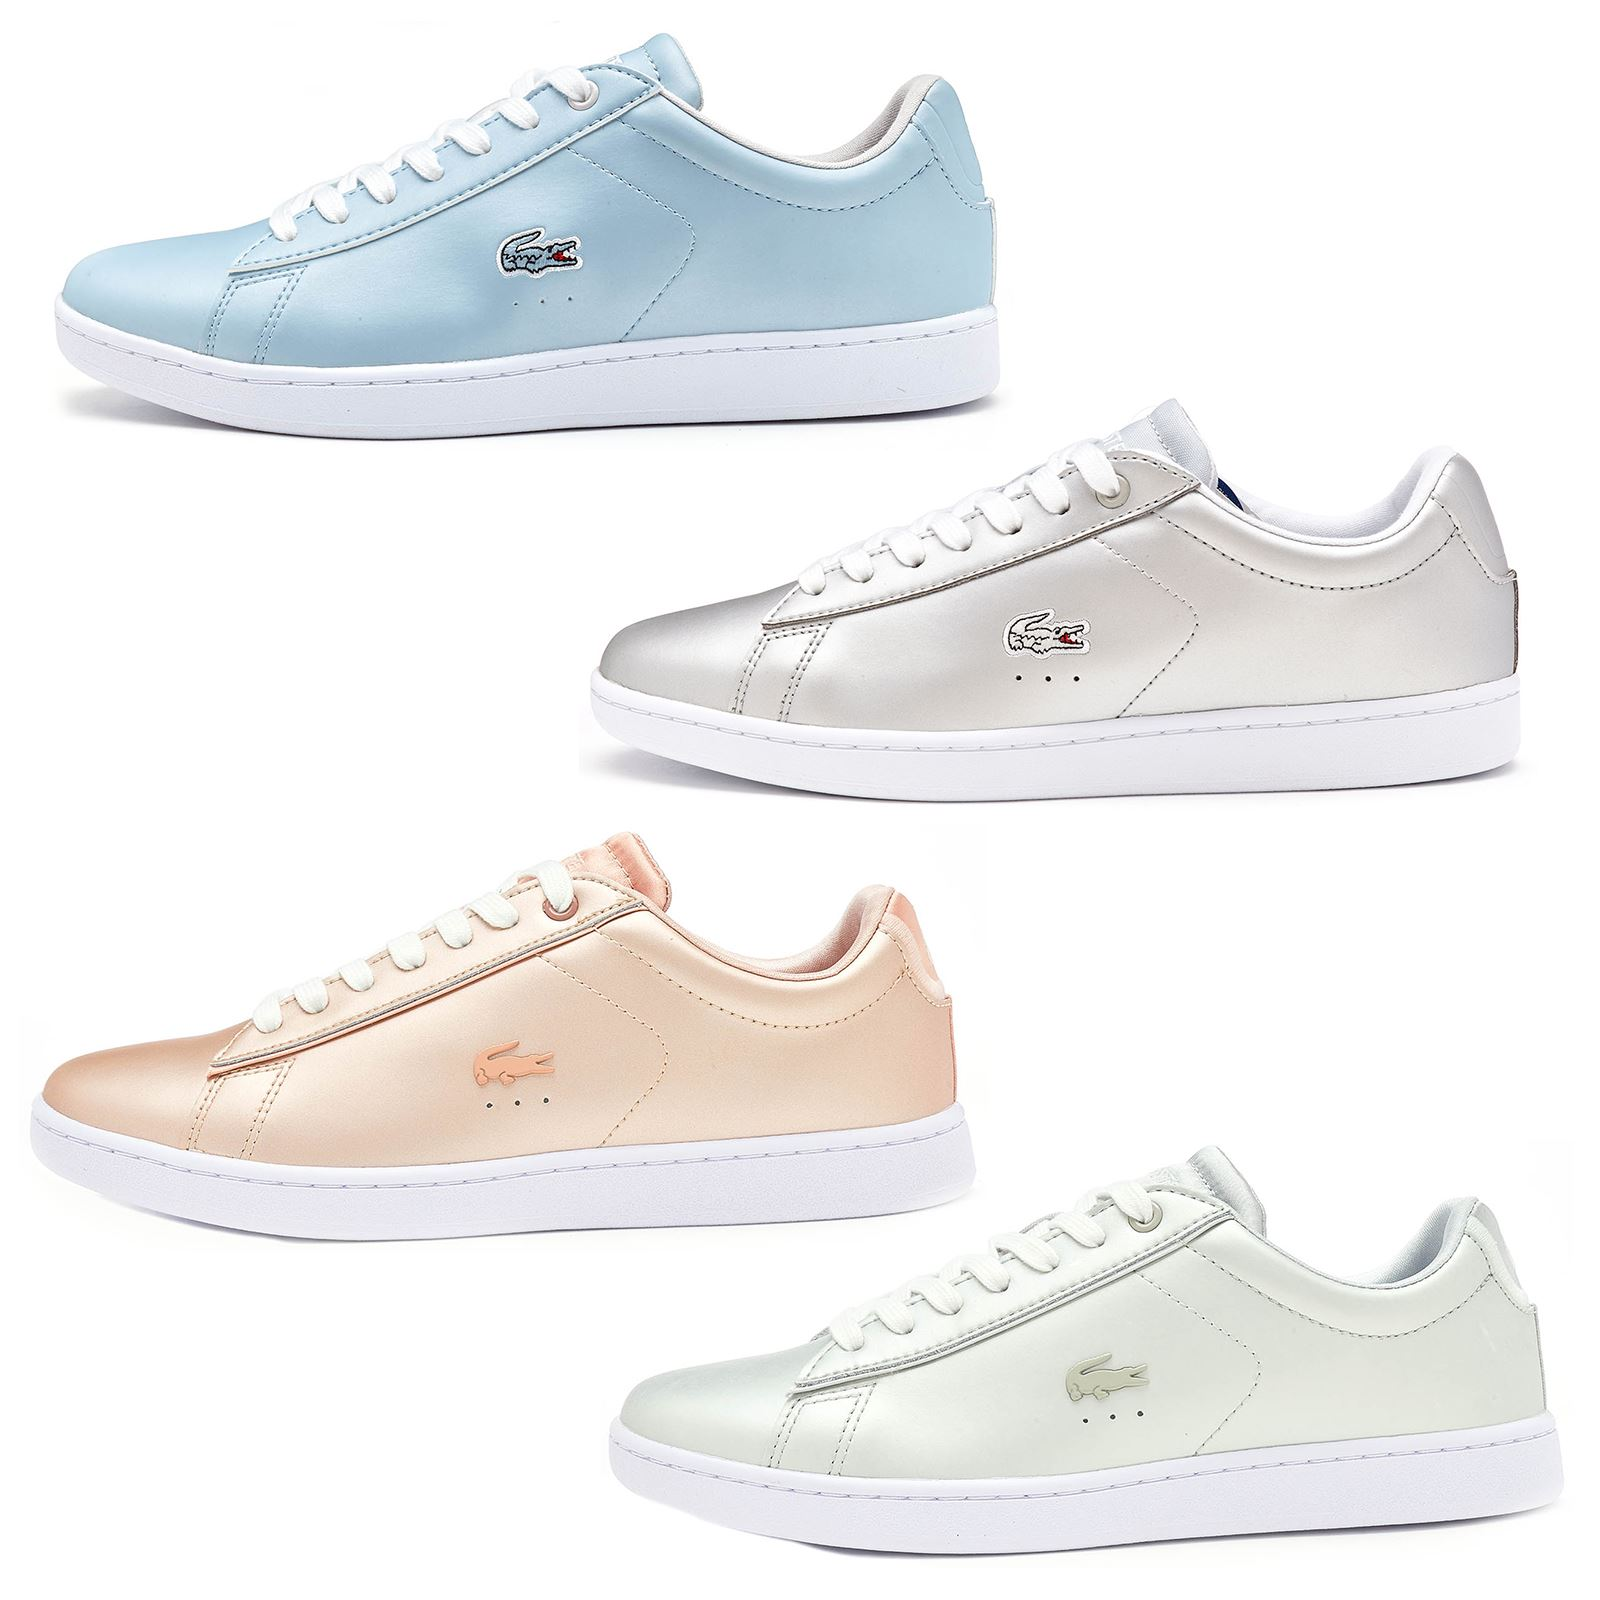 Lacoste Carnaby EVO Leder Trainers in Metallic Silver, Blau & Pink 733SPW1012